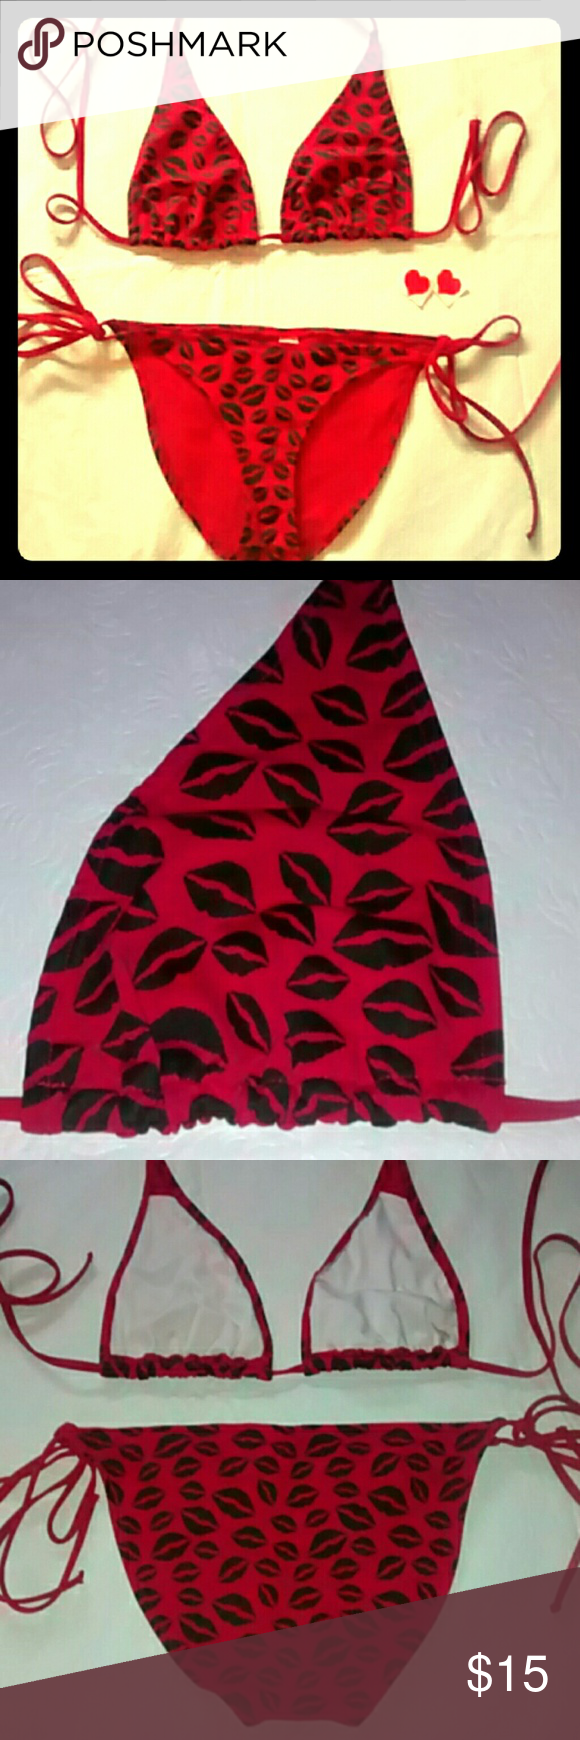 Hot Lips String Bikini✨✨ Excellent, Like New Condition! Size tags have been cut out but it's a size large. Bottoms tie in sides. Top is a halter type- ties around neck, and in back and has pockets to add padding inserts if desired (not included) Red w black hot lips print thru-out. Swim Bikinis